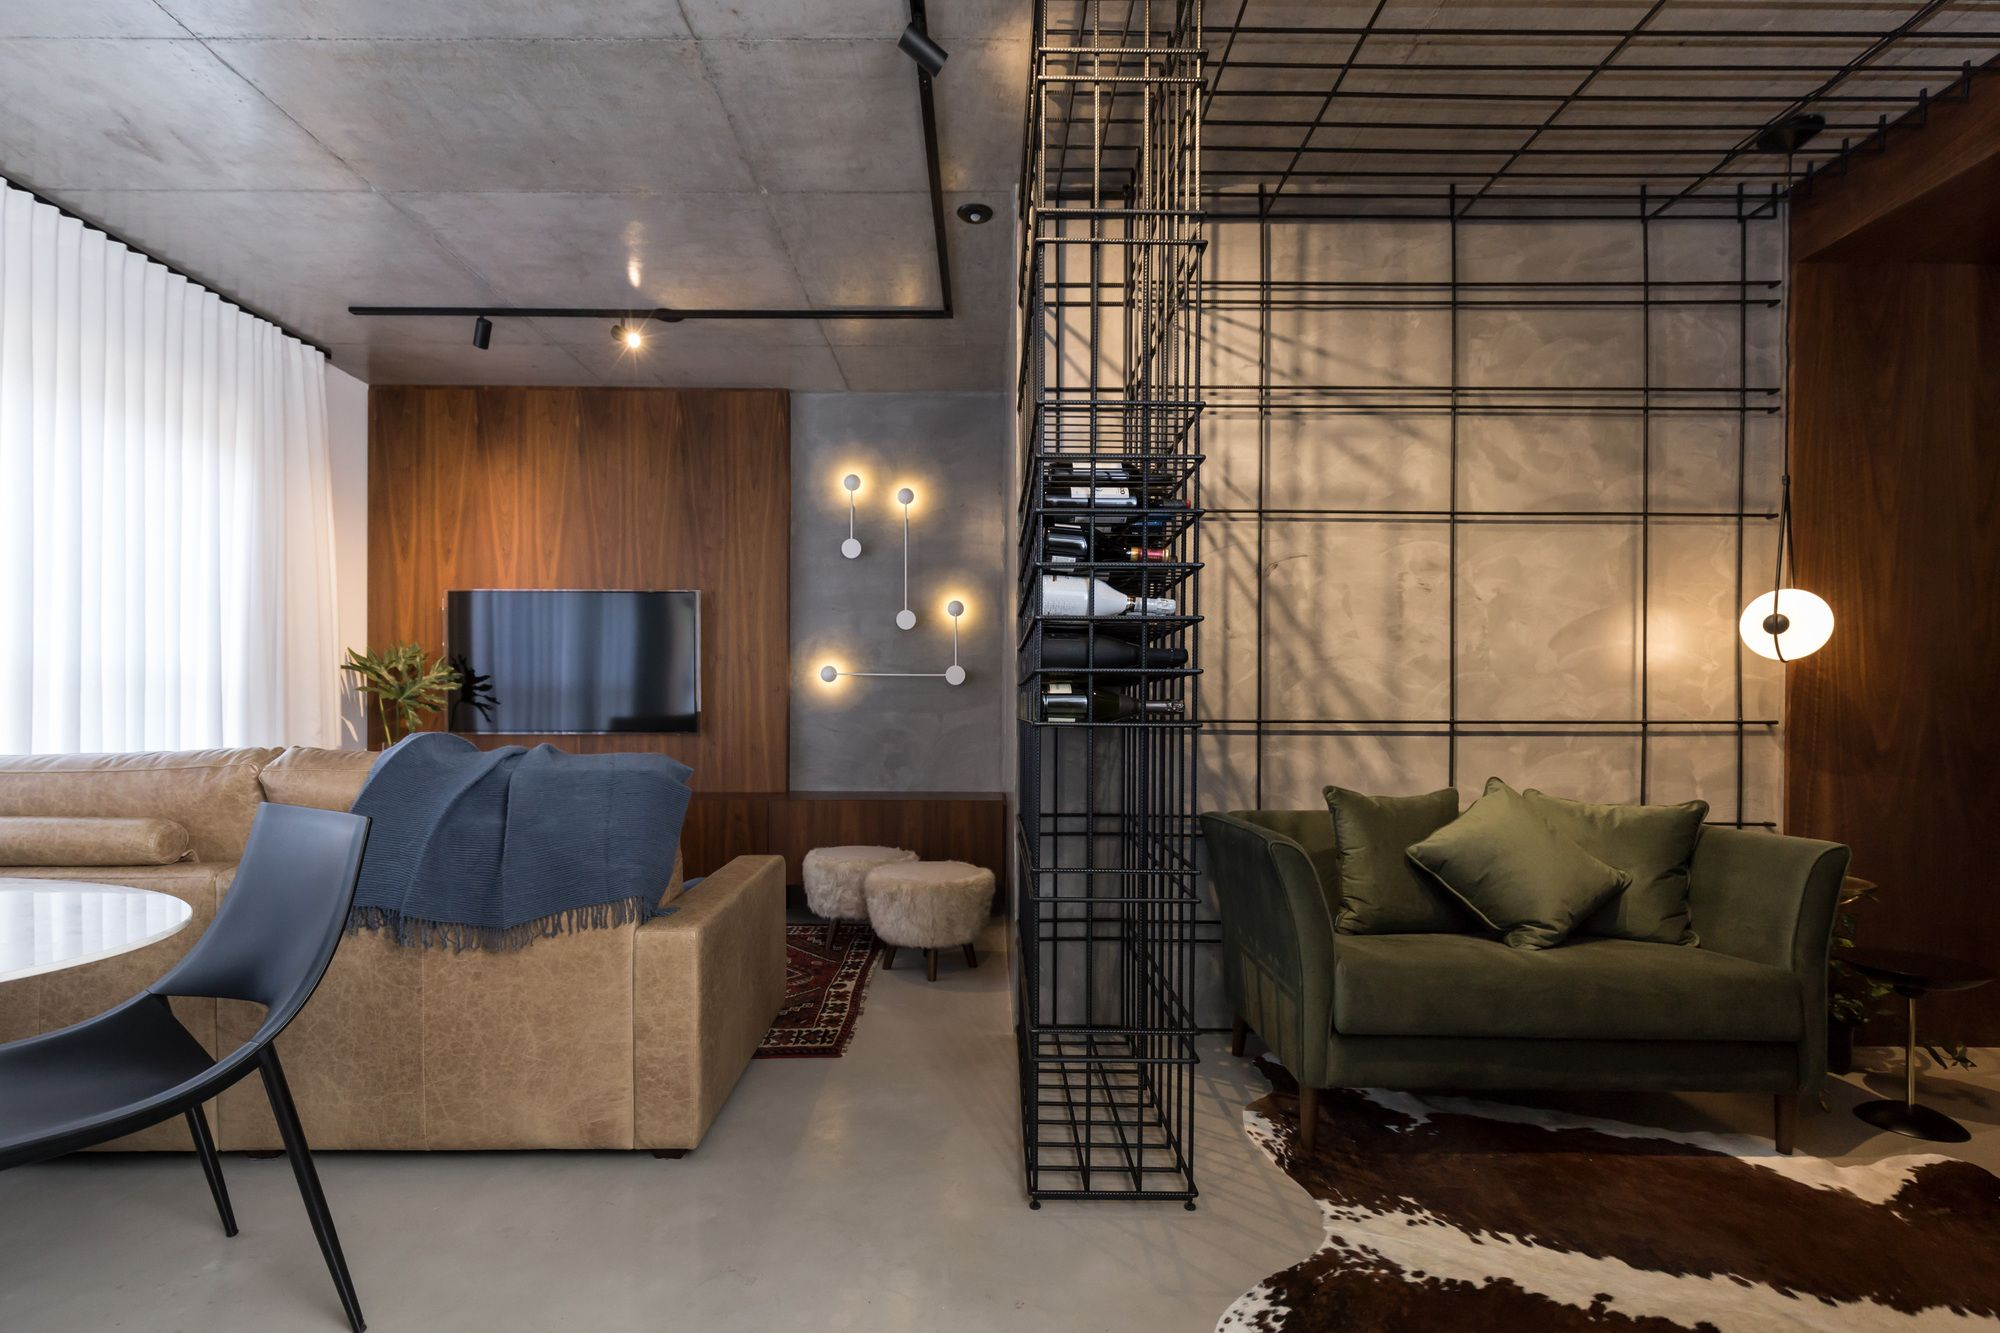 Maxhaus Maxhaus Loft 304 Estúdio Voe Arq Living Room Designs Home